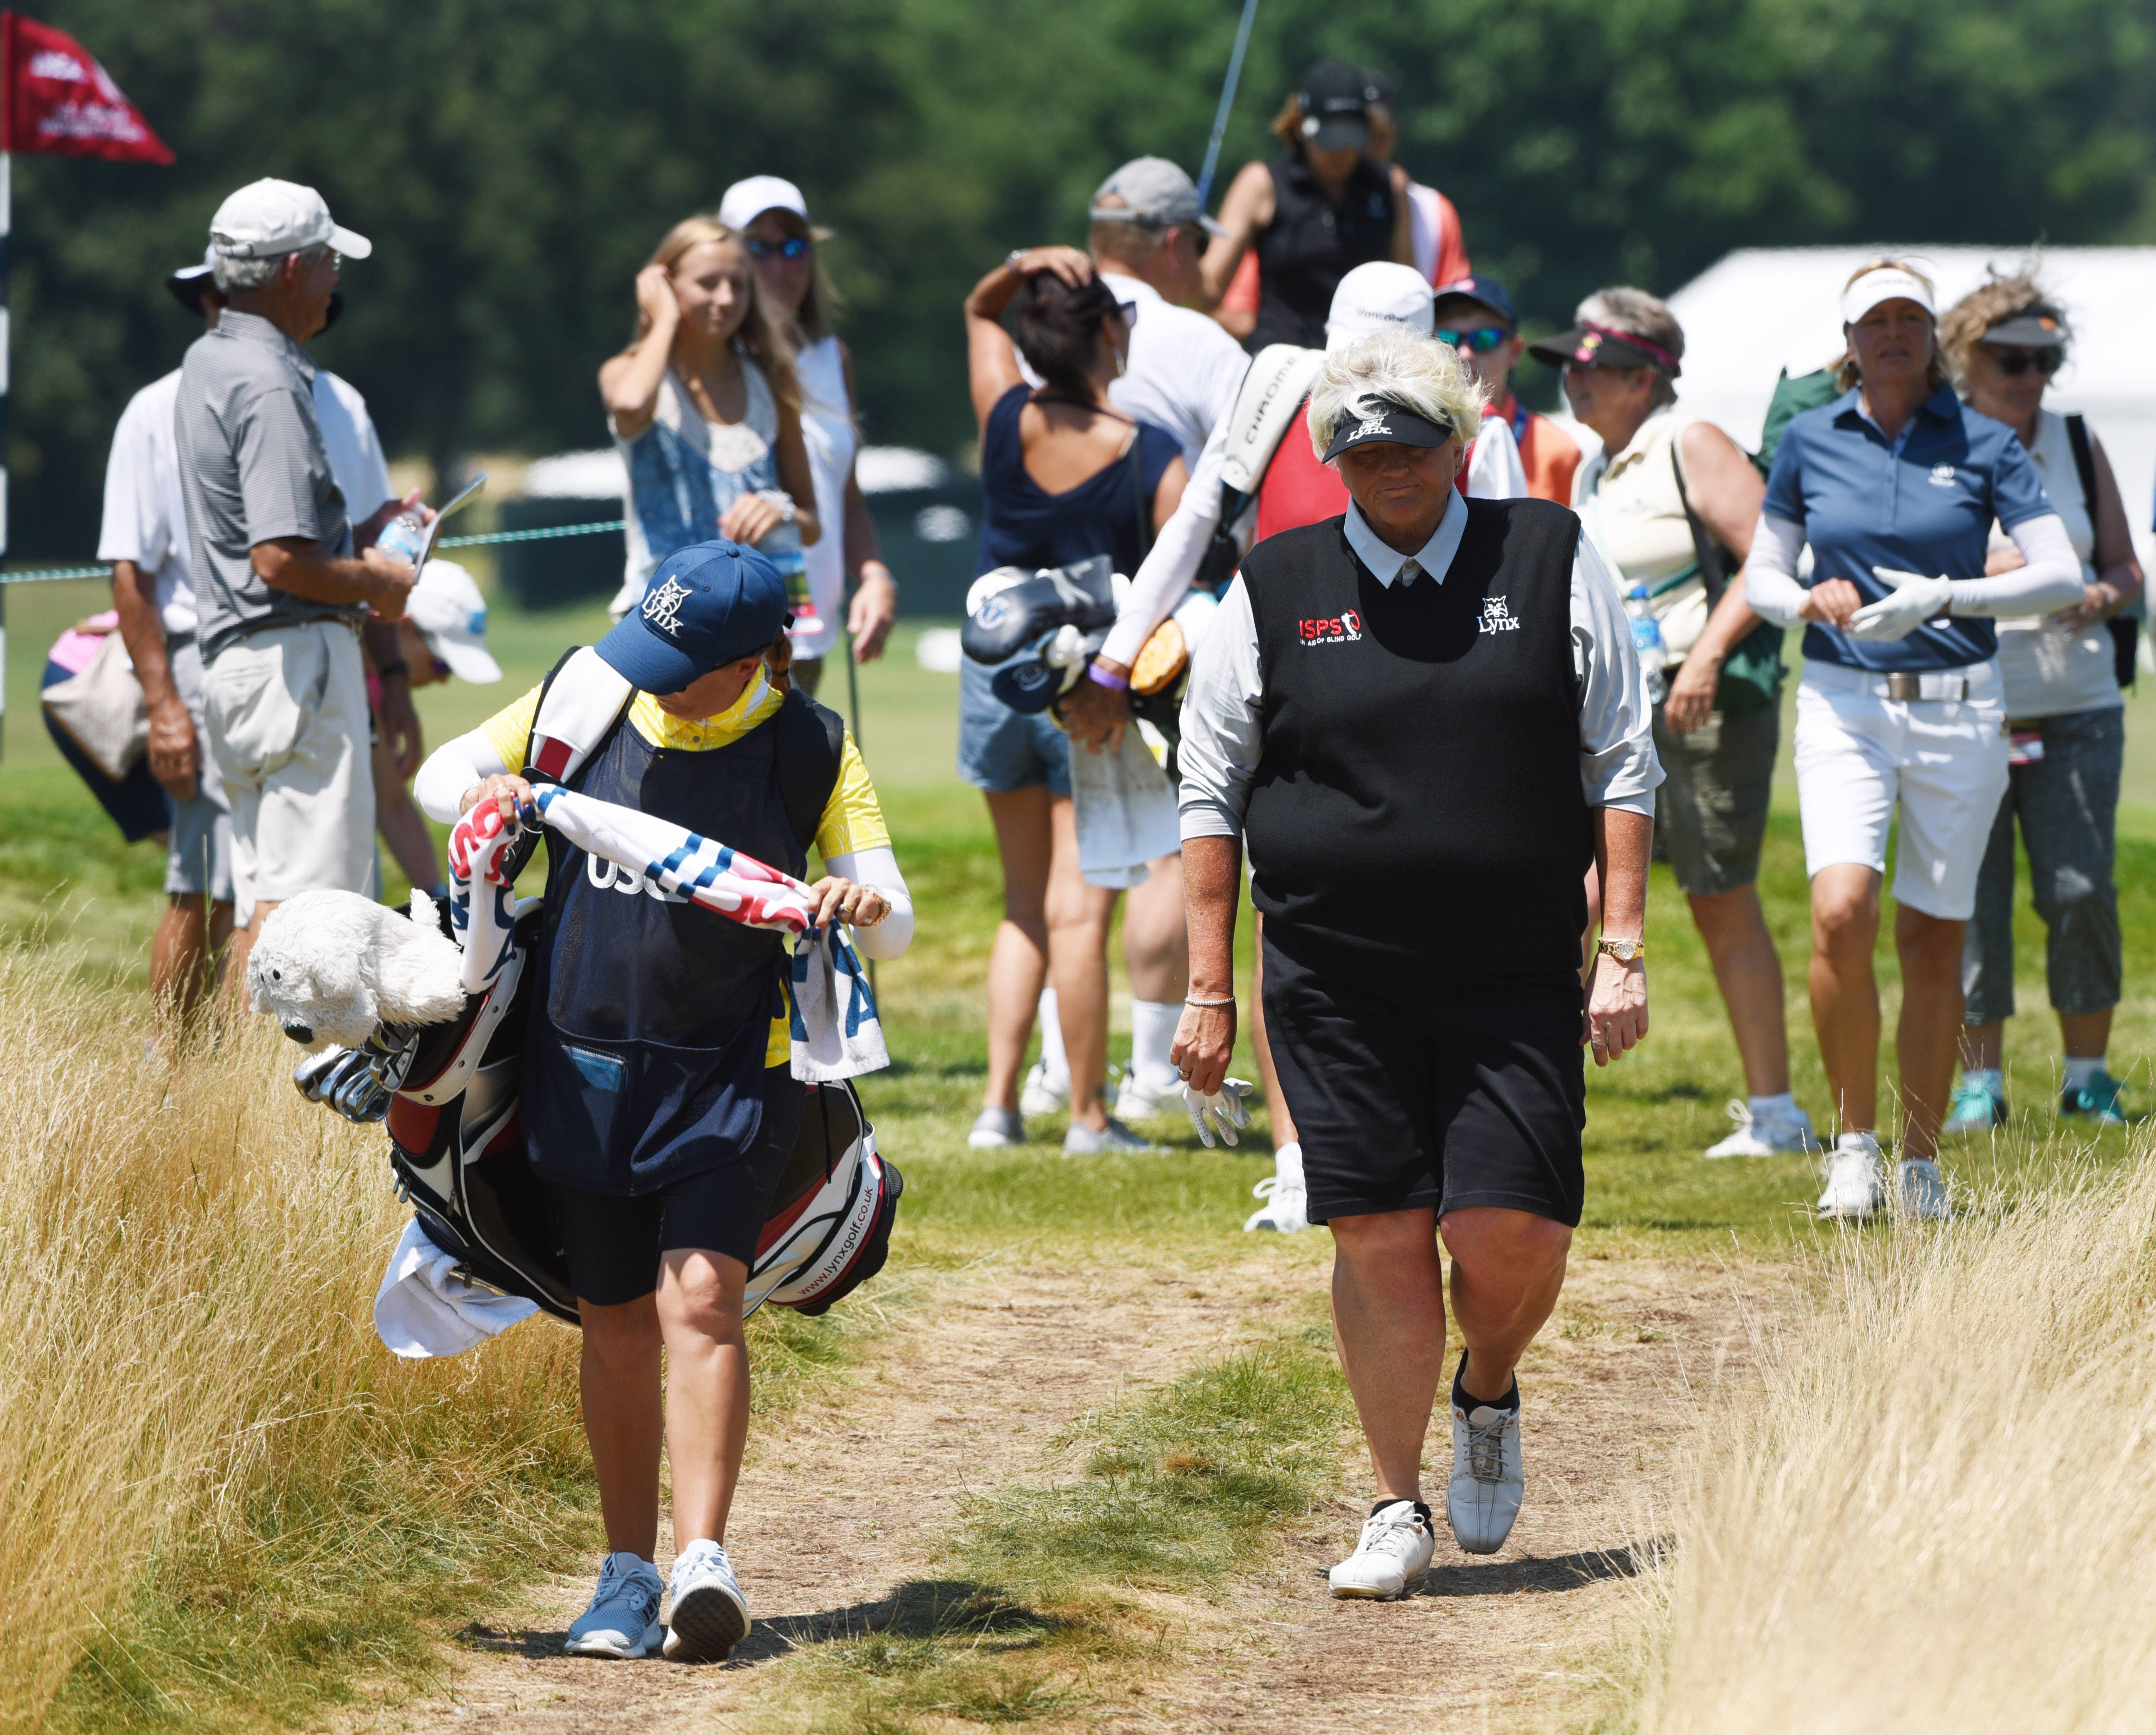 Senior Women's Open crowds, merchandise sales exceeding expectations